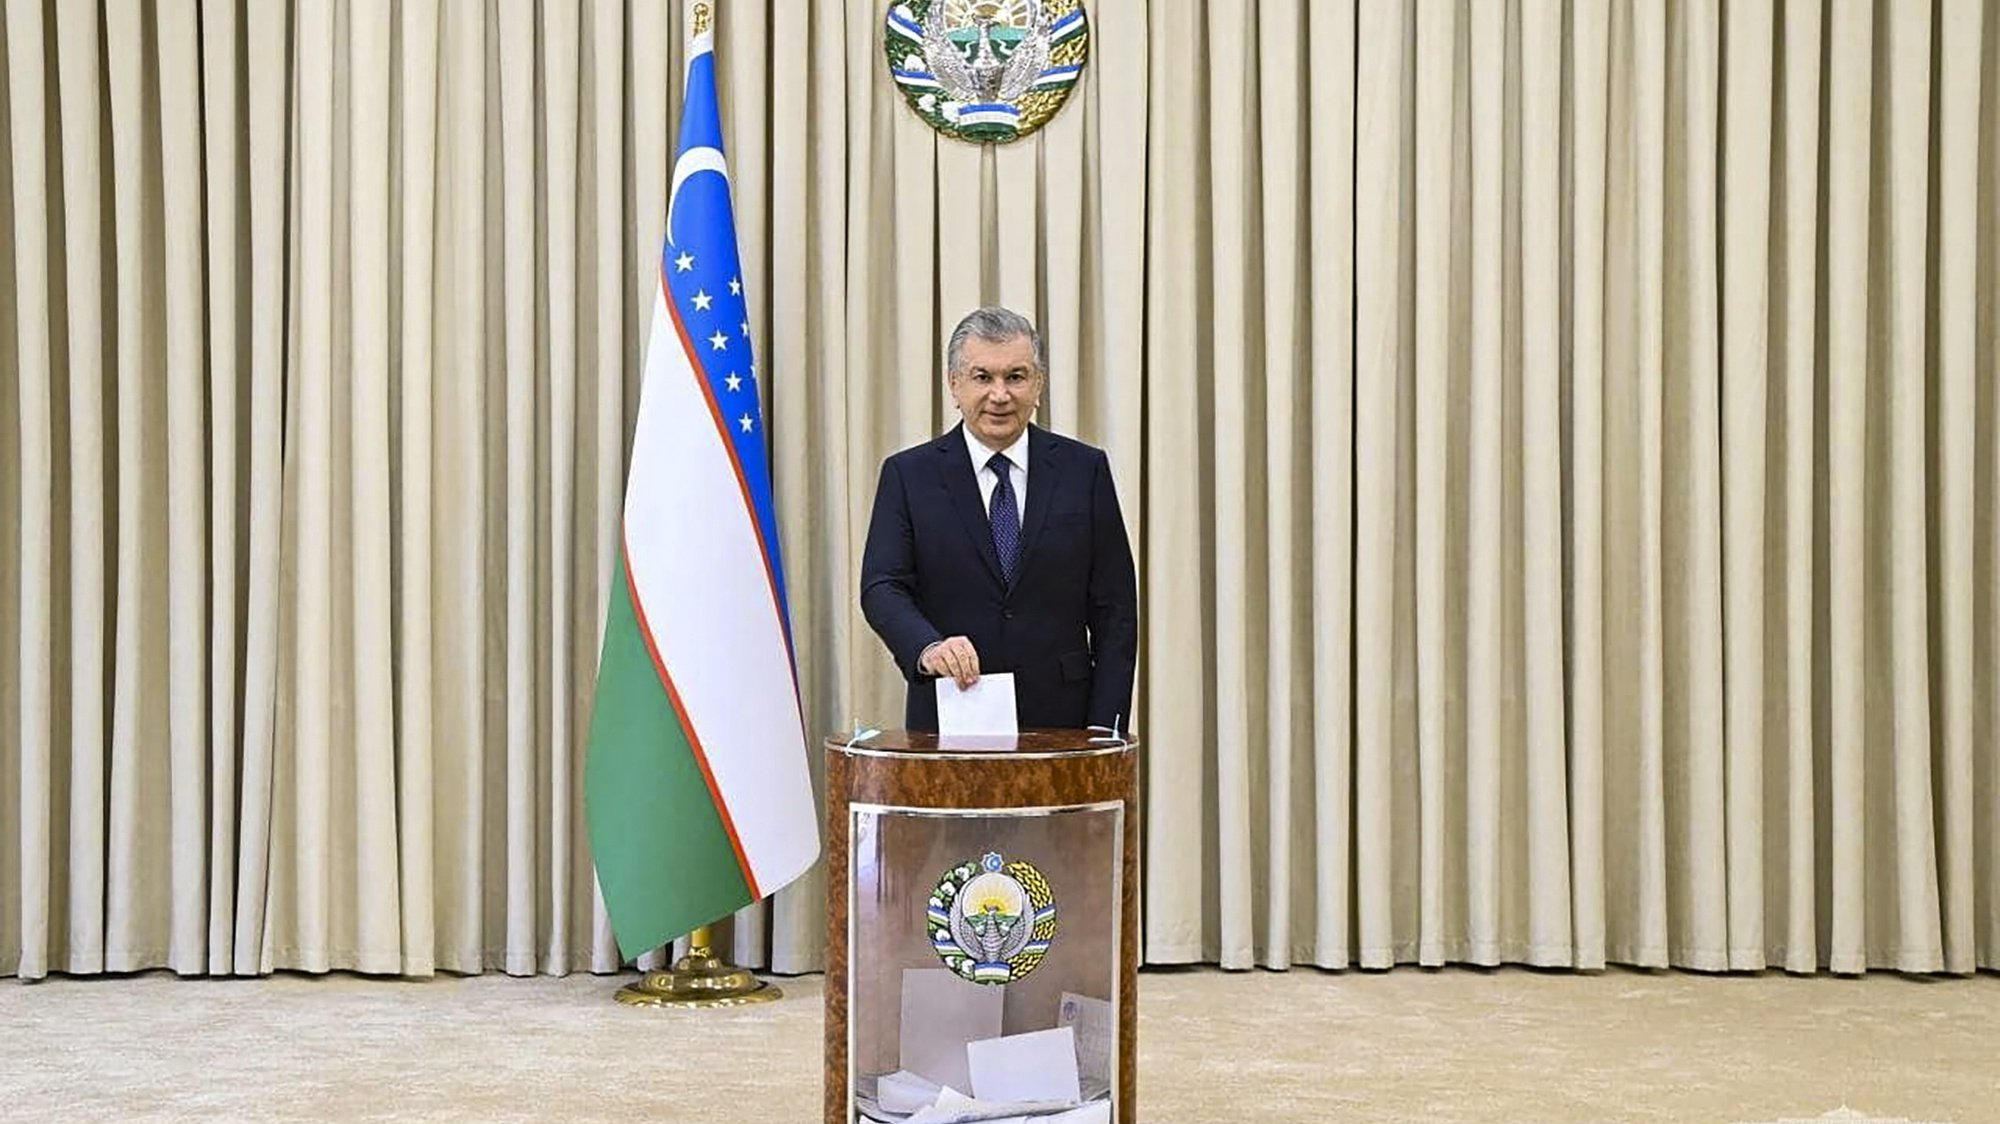 epa09542776 A handout photo made available by Uzbekistan President press service shows Uzbekistan President Shavkat Mirziyoyev casting his vote at Uzbek presidential elections on the polling station in Tashkent, Uzbekistan, 24 October 2021. Incumbent President Mirziyoyev is widely expected to win a second term during elections in which he is facing four candidates. Presidential elections in Uzbekistan are held every five years, and Mirziyoyev won the last held in December 2016 with 88.61 percent of all votes against his three rivals.  EPA/UZBEKISTAN PRESIDENT PRESS SERVICE HANDOUT  HANDOUT EDITORIAL USE ONLY/NO SALES